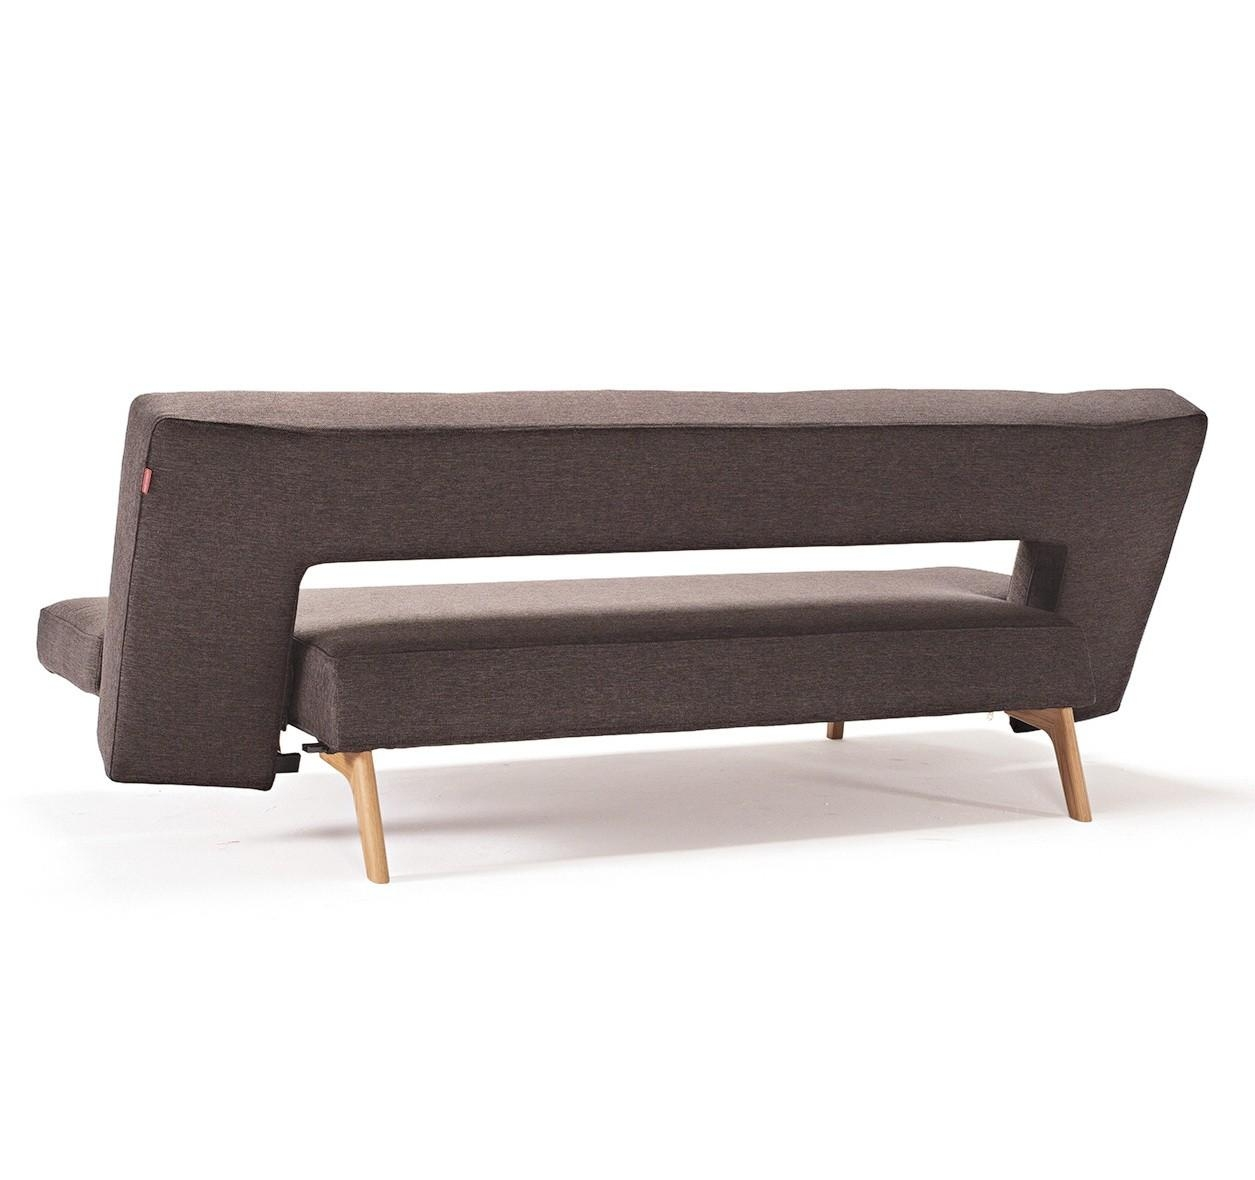 Puzzle Modern Sofa Bedinnovation With Wooden Legs In Fabric Intended For Wood Legs Sofas (Image 10 of 23)